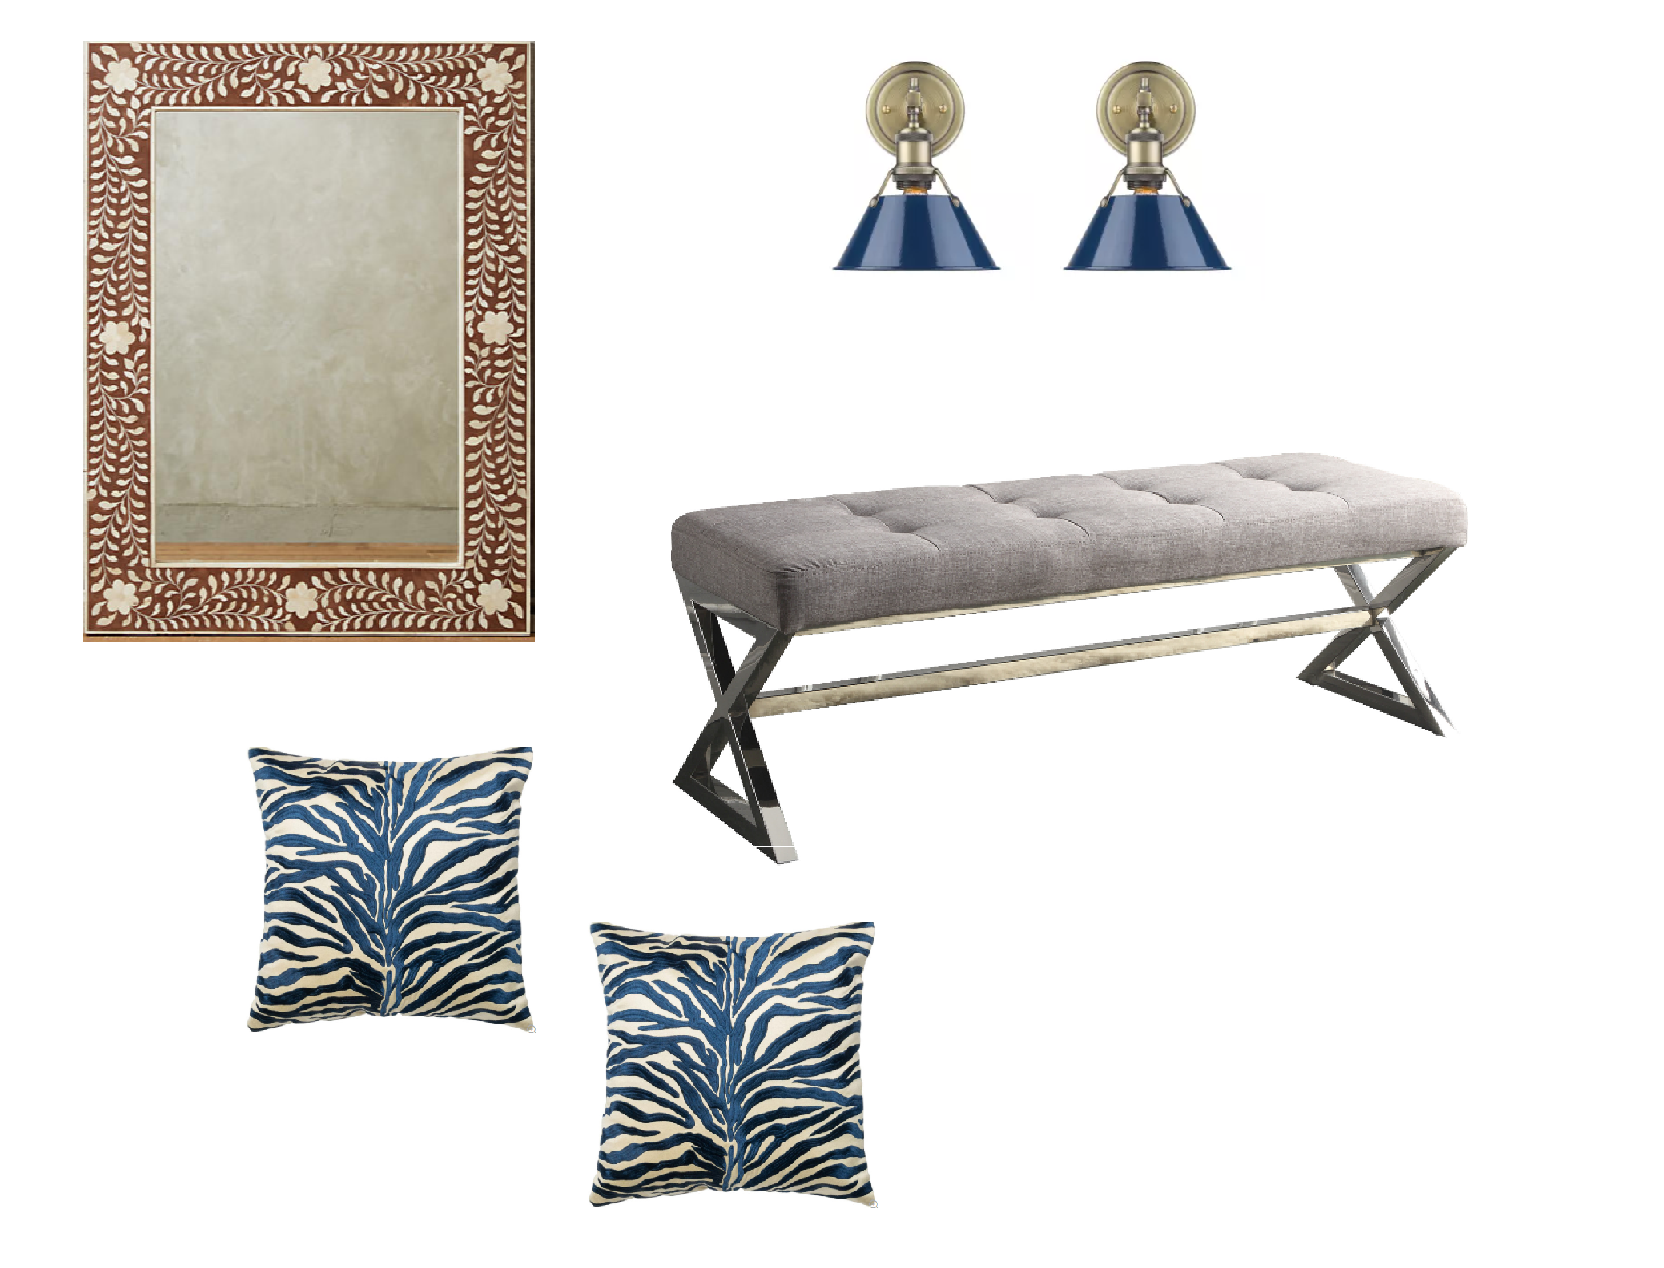 with a  tufted bench , zebra print pillows and  navy scones.